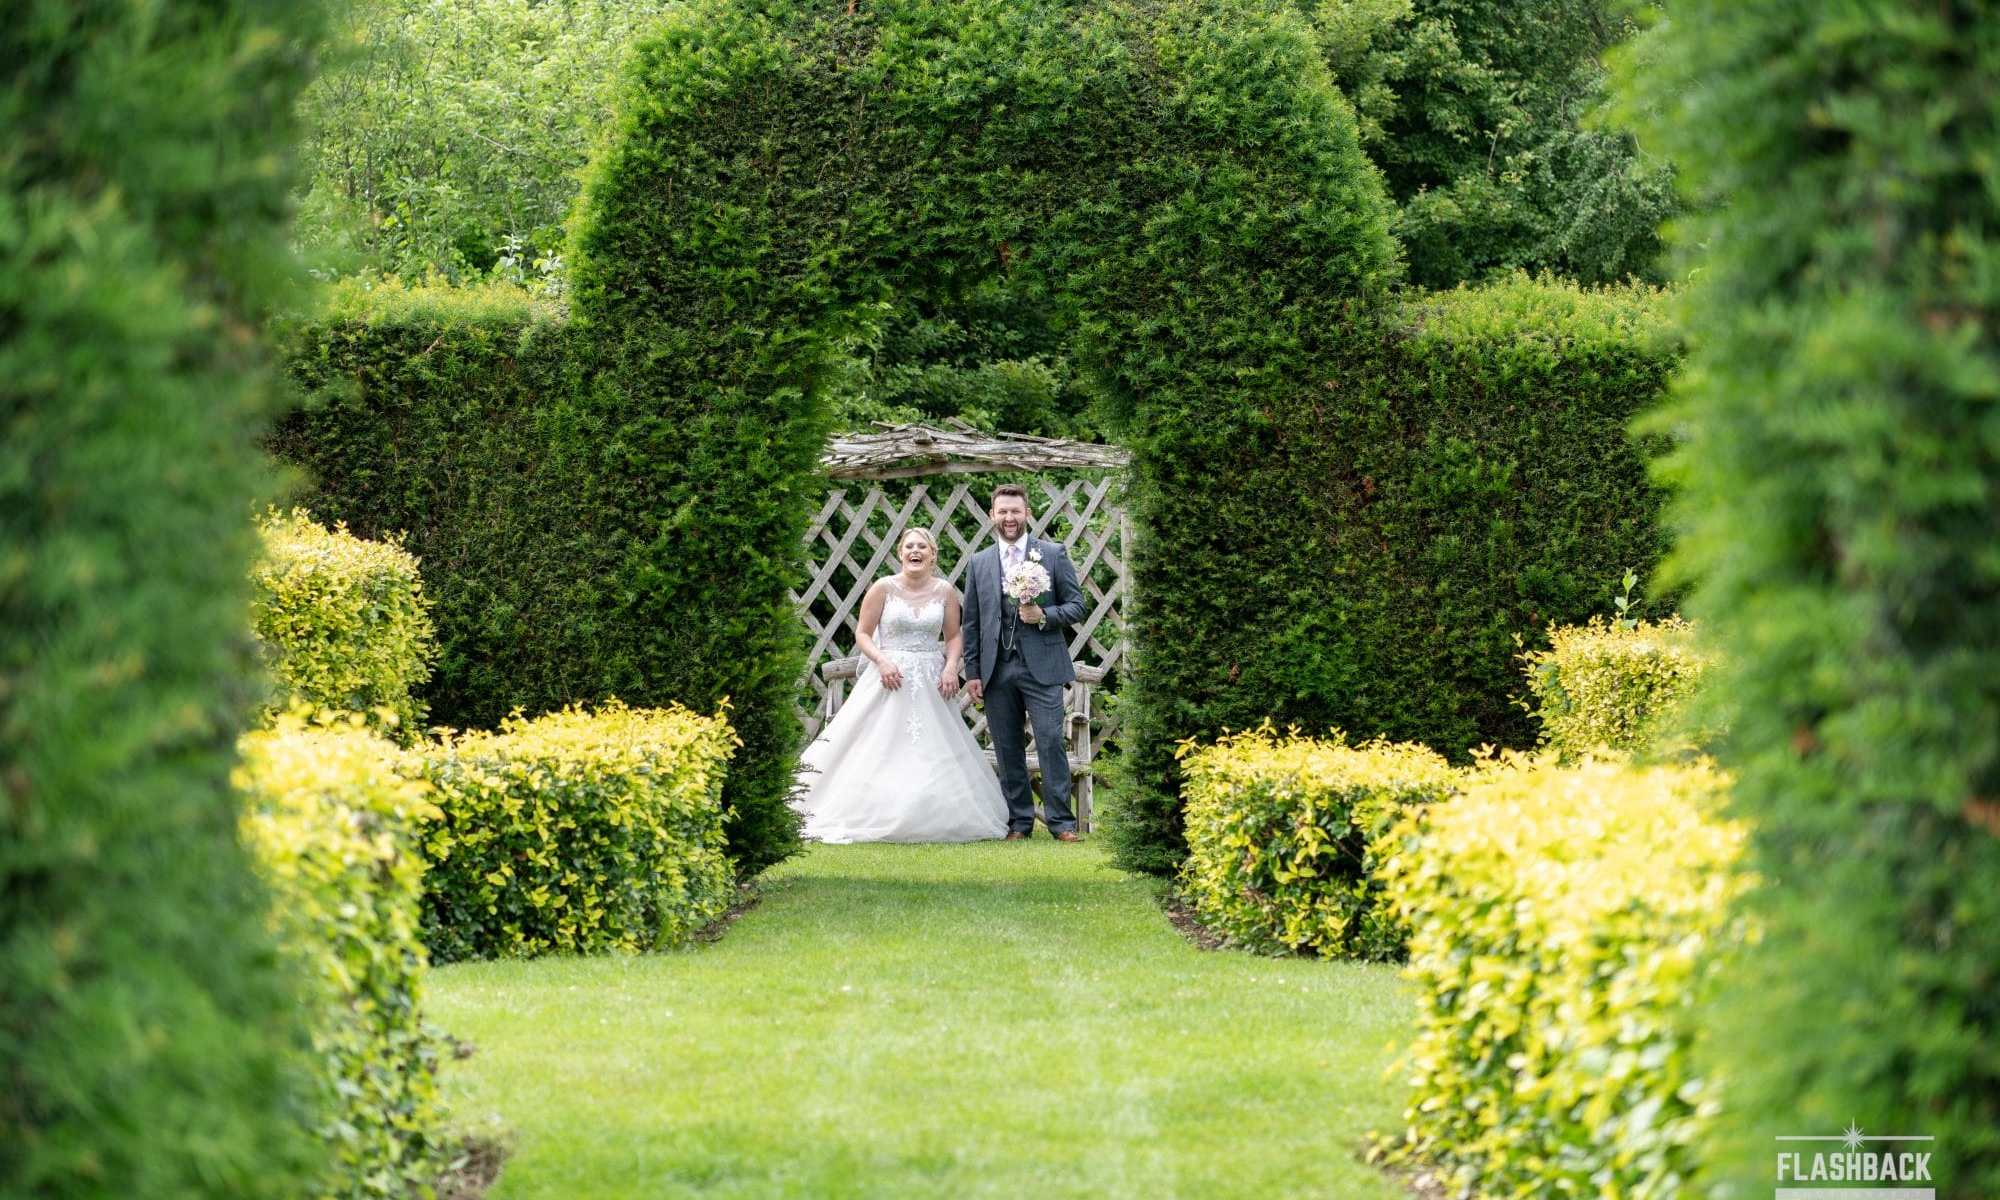 the Secret Gardens - Yalding-Maidstone-Kent - Bride and Groom walking through hedged archway with groom holding the flowers located in our Kent Wedding Gallery